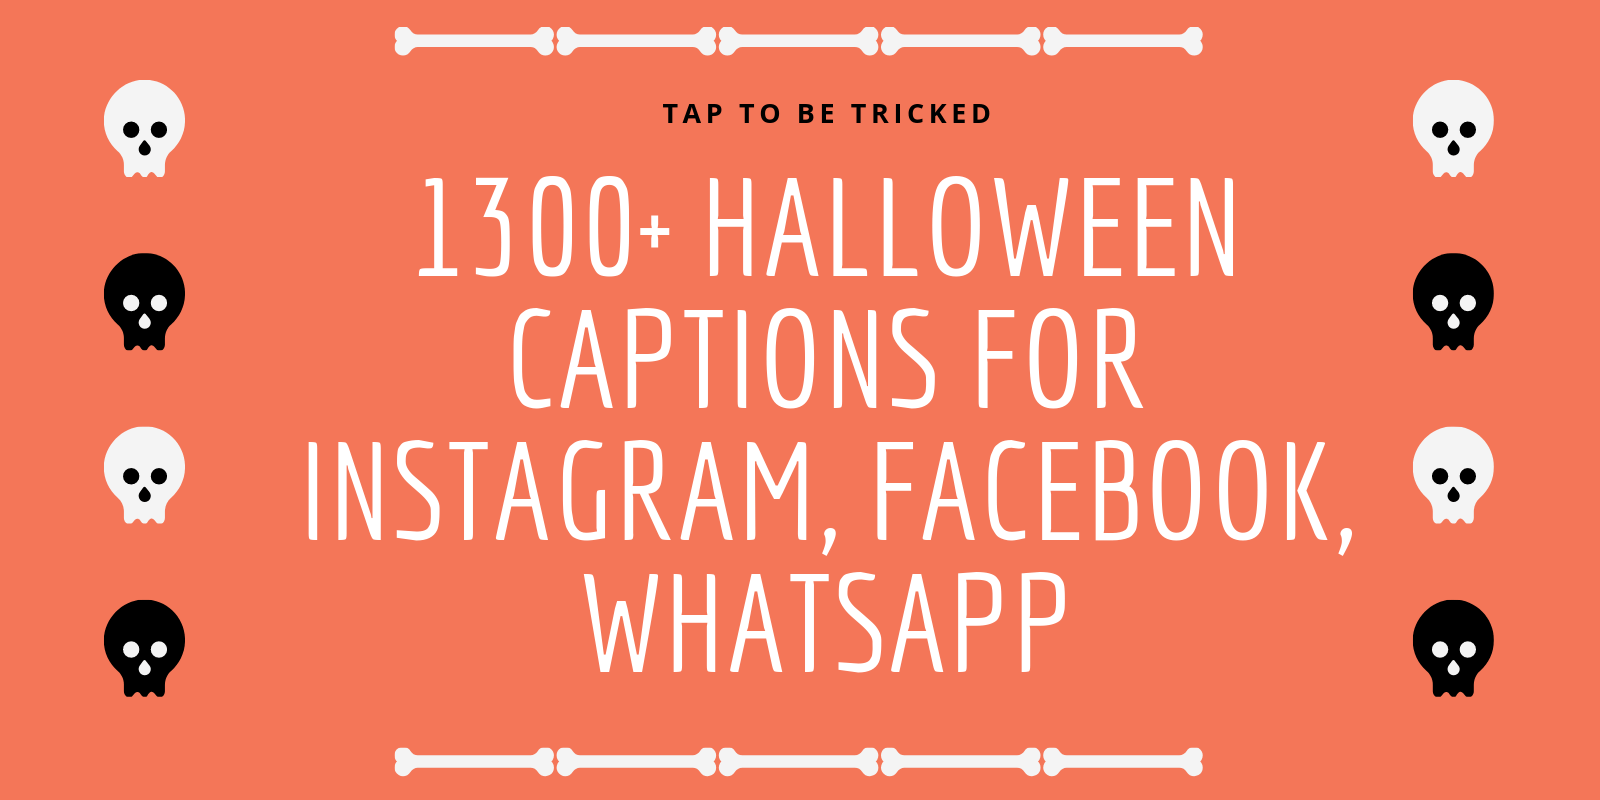 Best Halloween Caption for Instagram, Facebook, WhatsApp. Tap To be Tricked